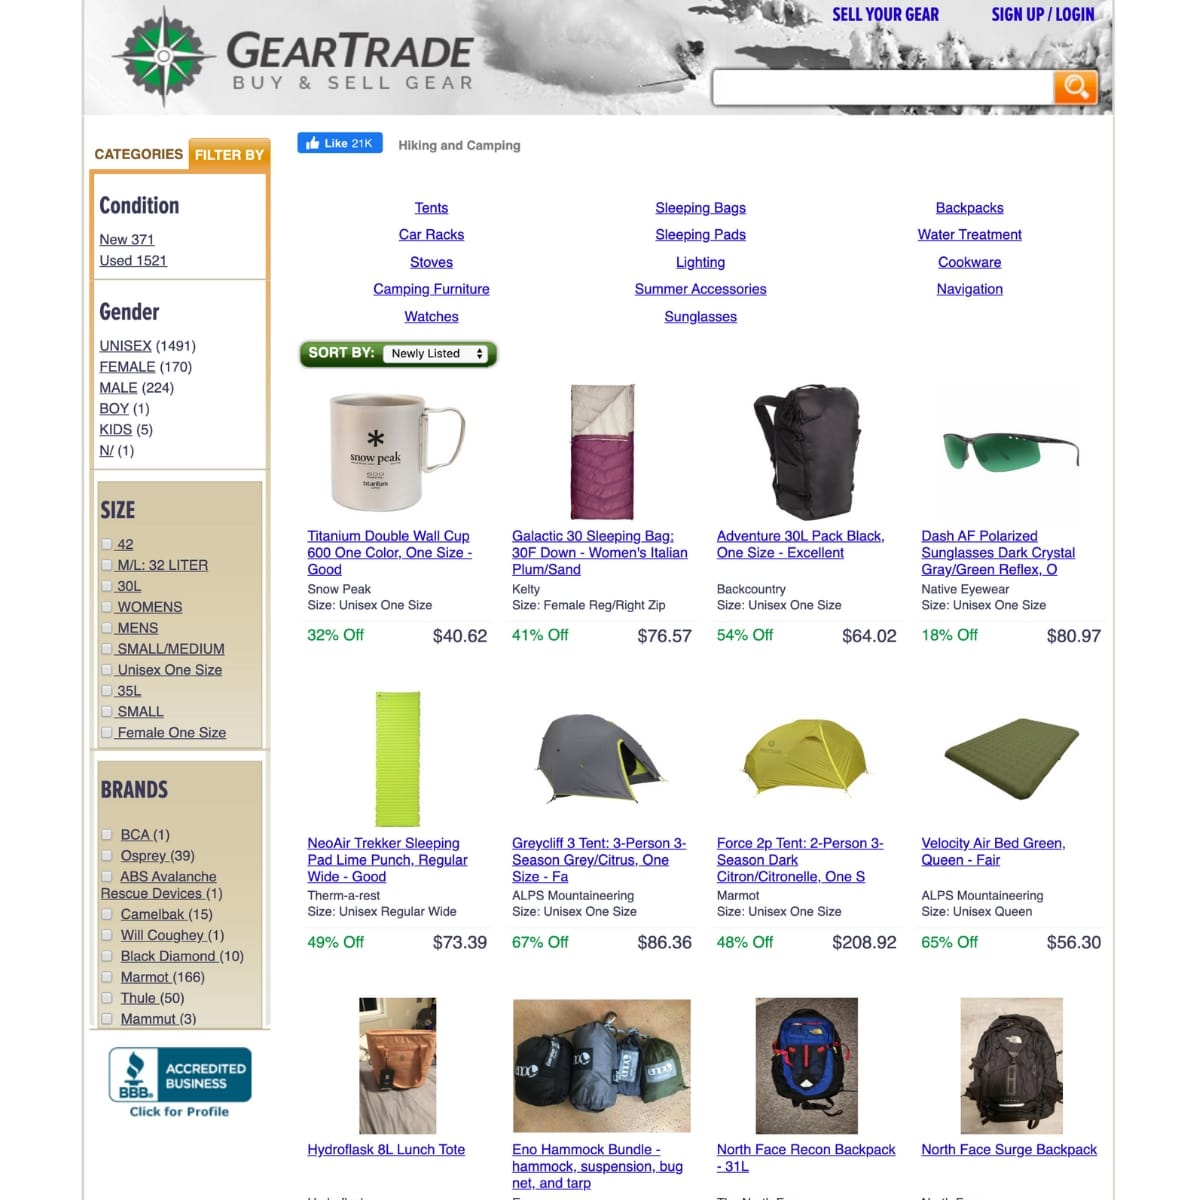 Screen shot of Gear Trade website